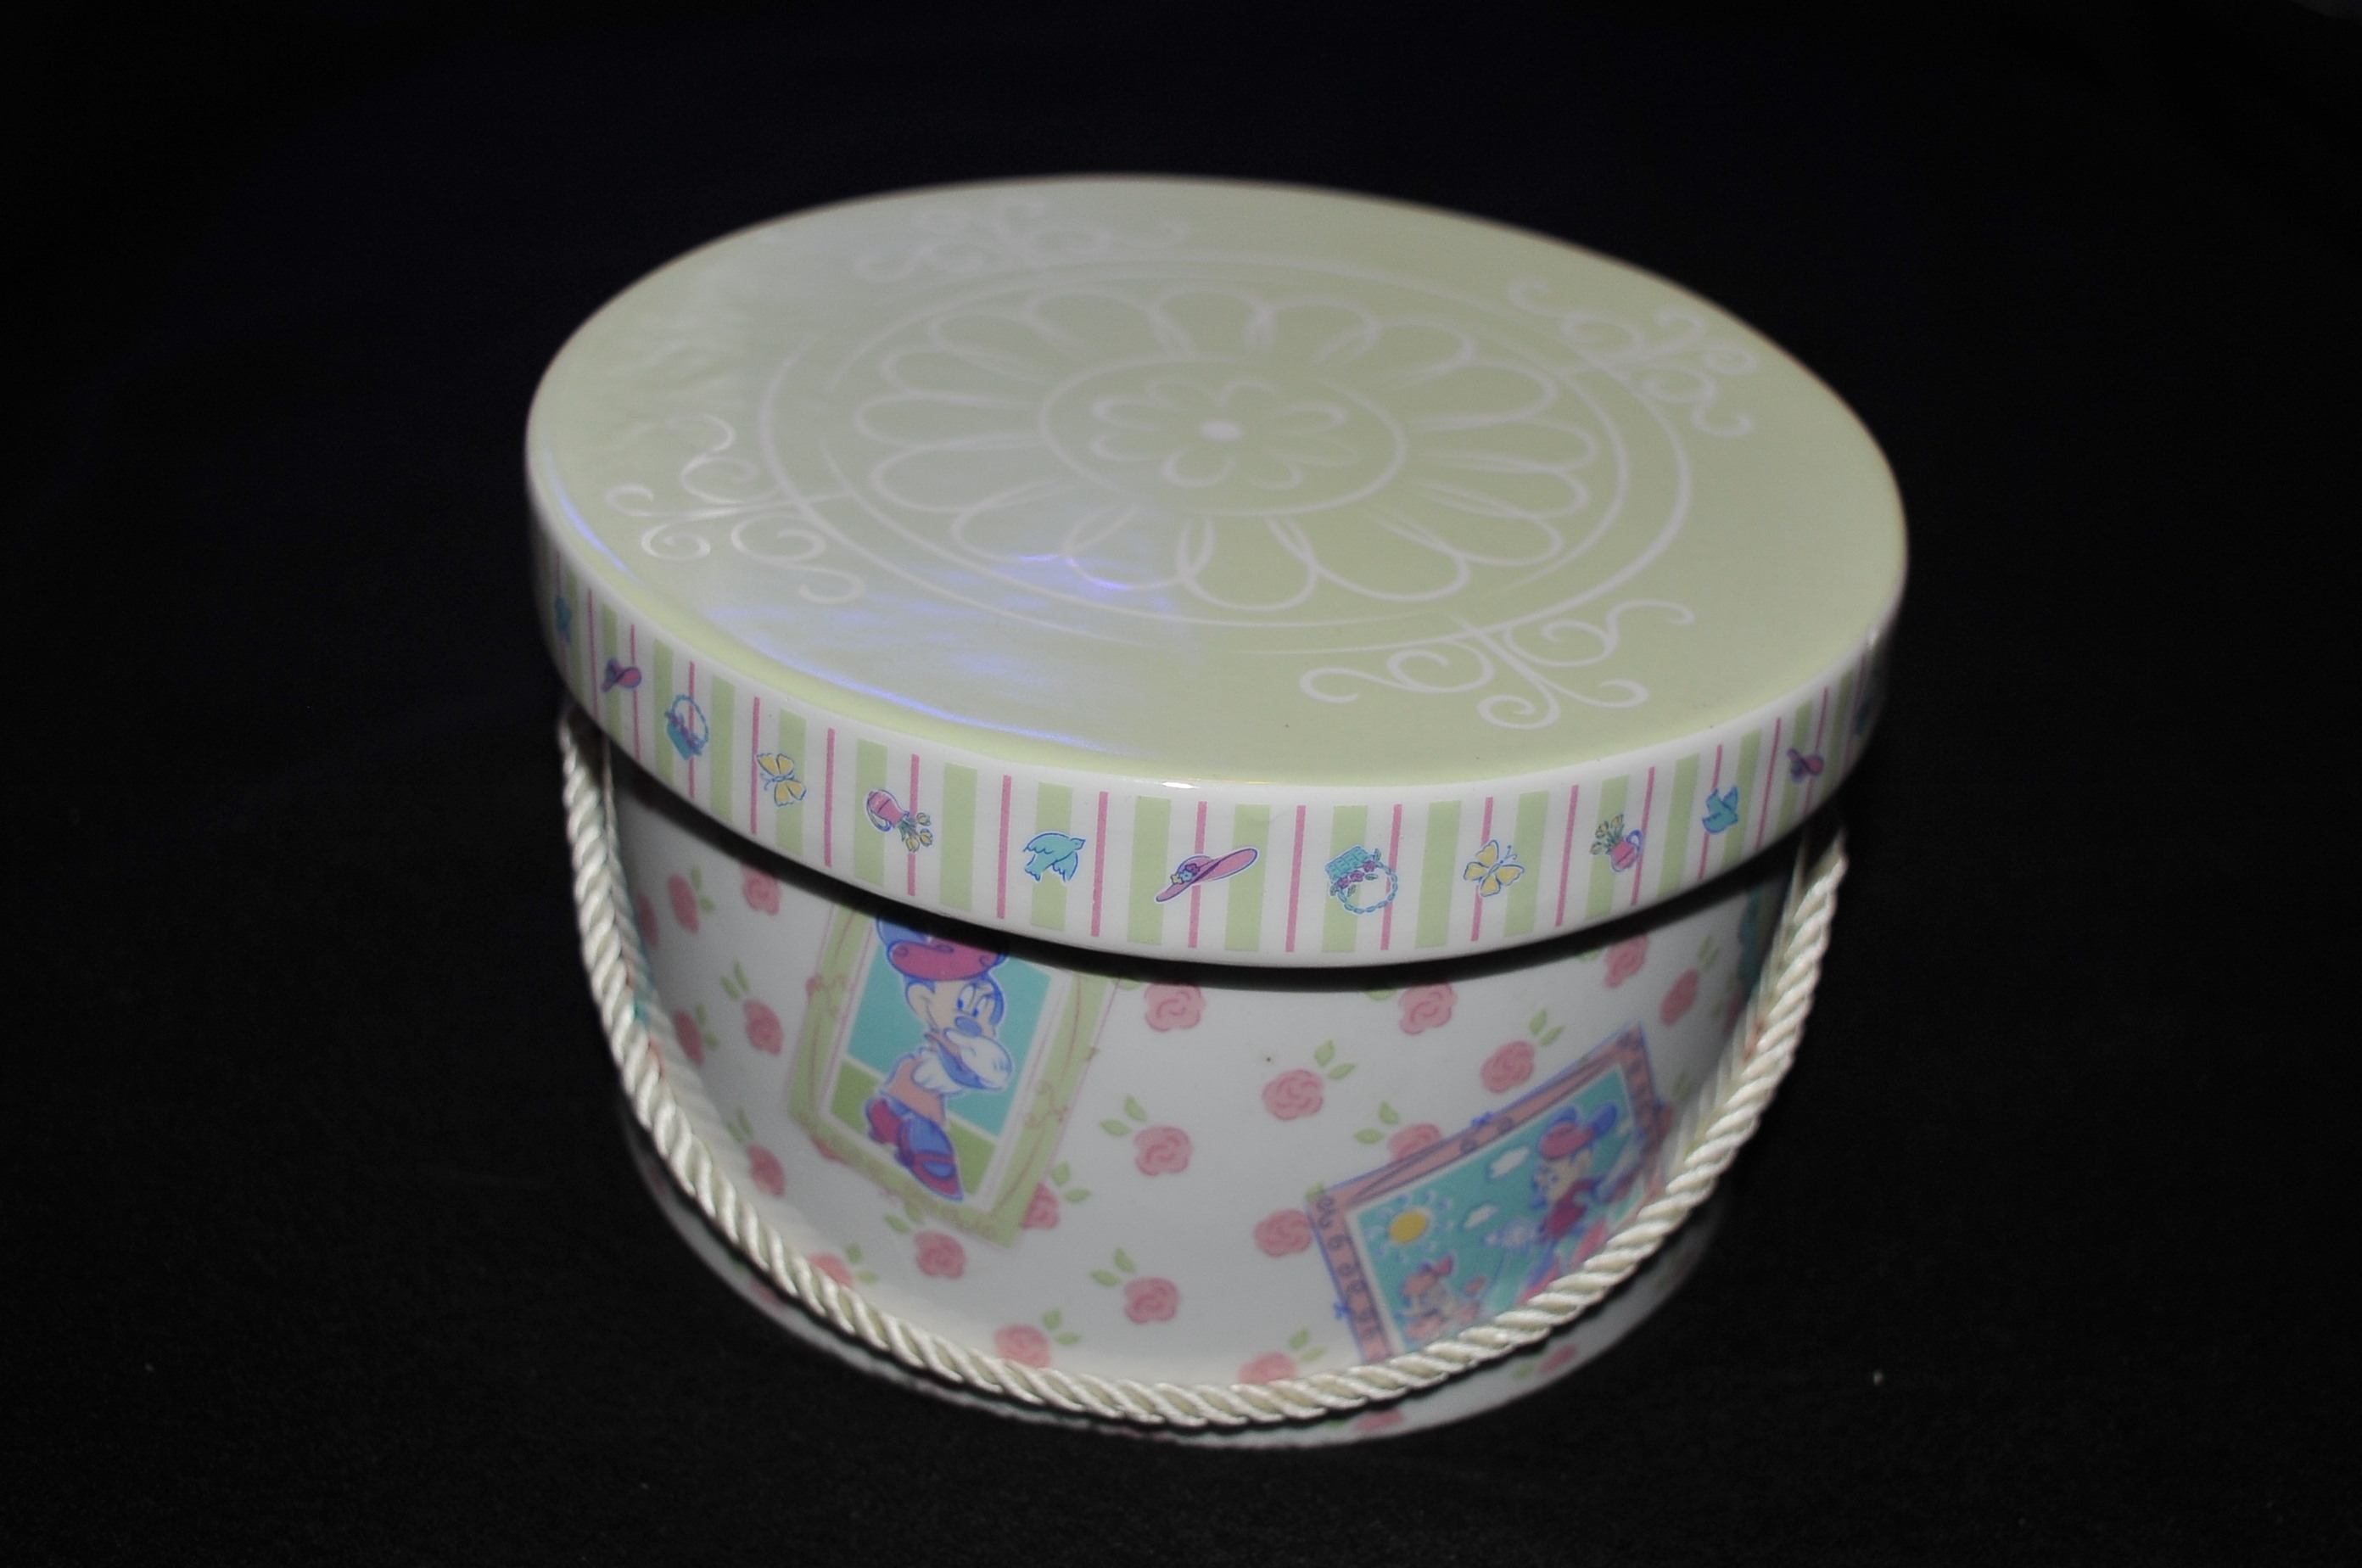 Disney round ceramic gift box